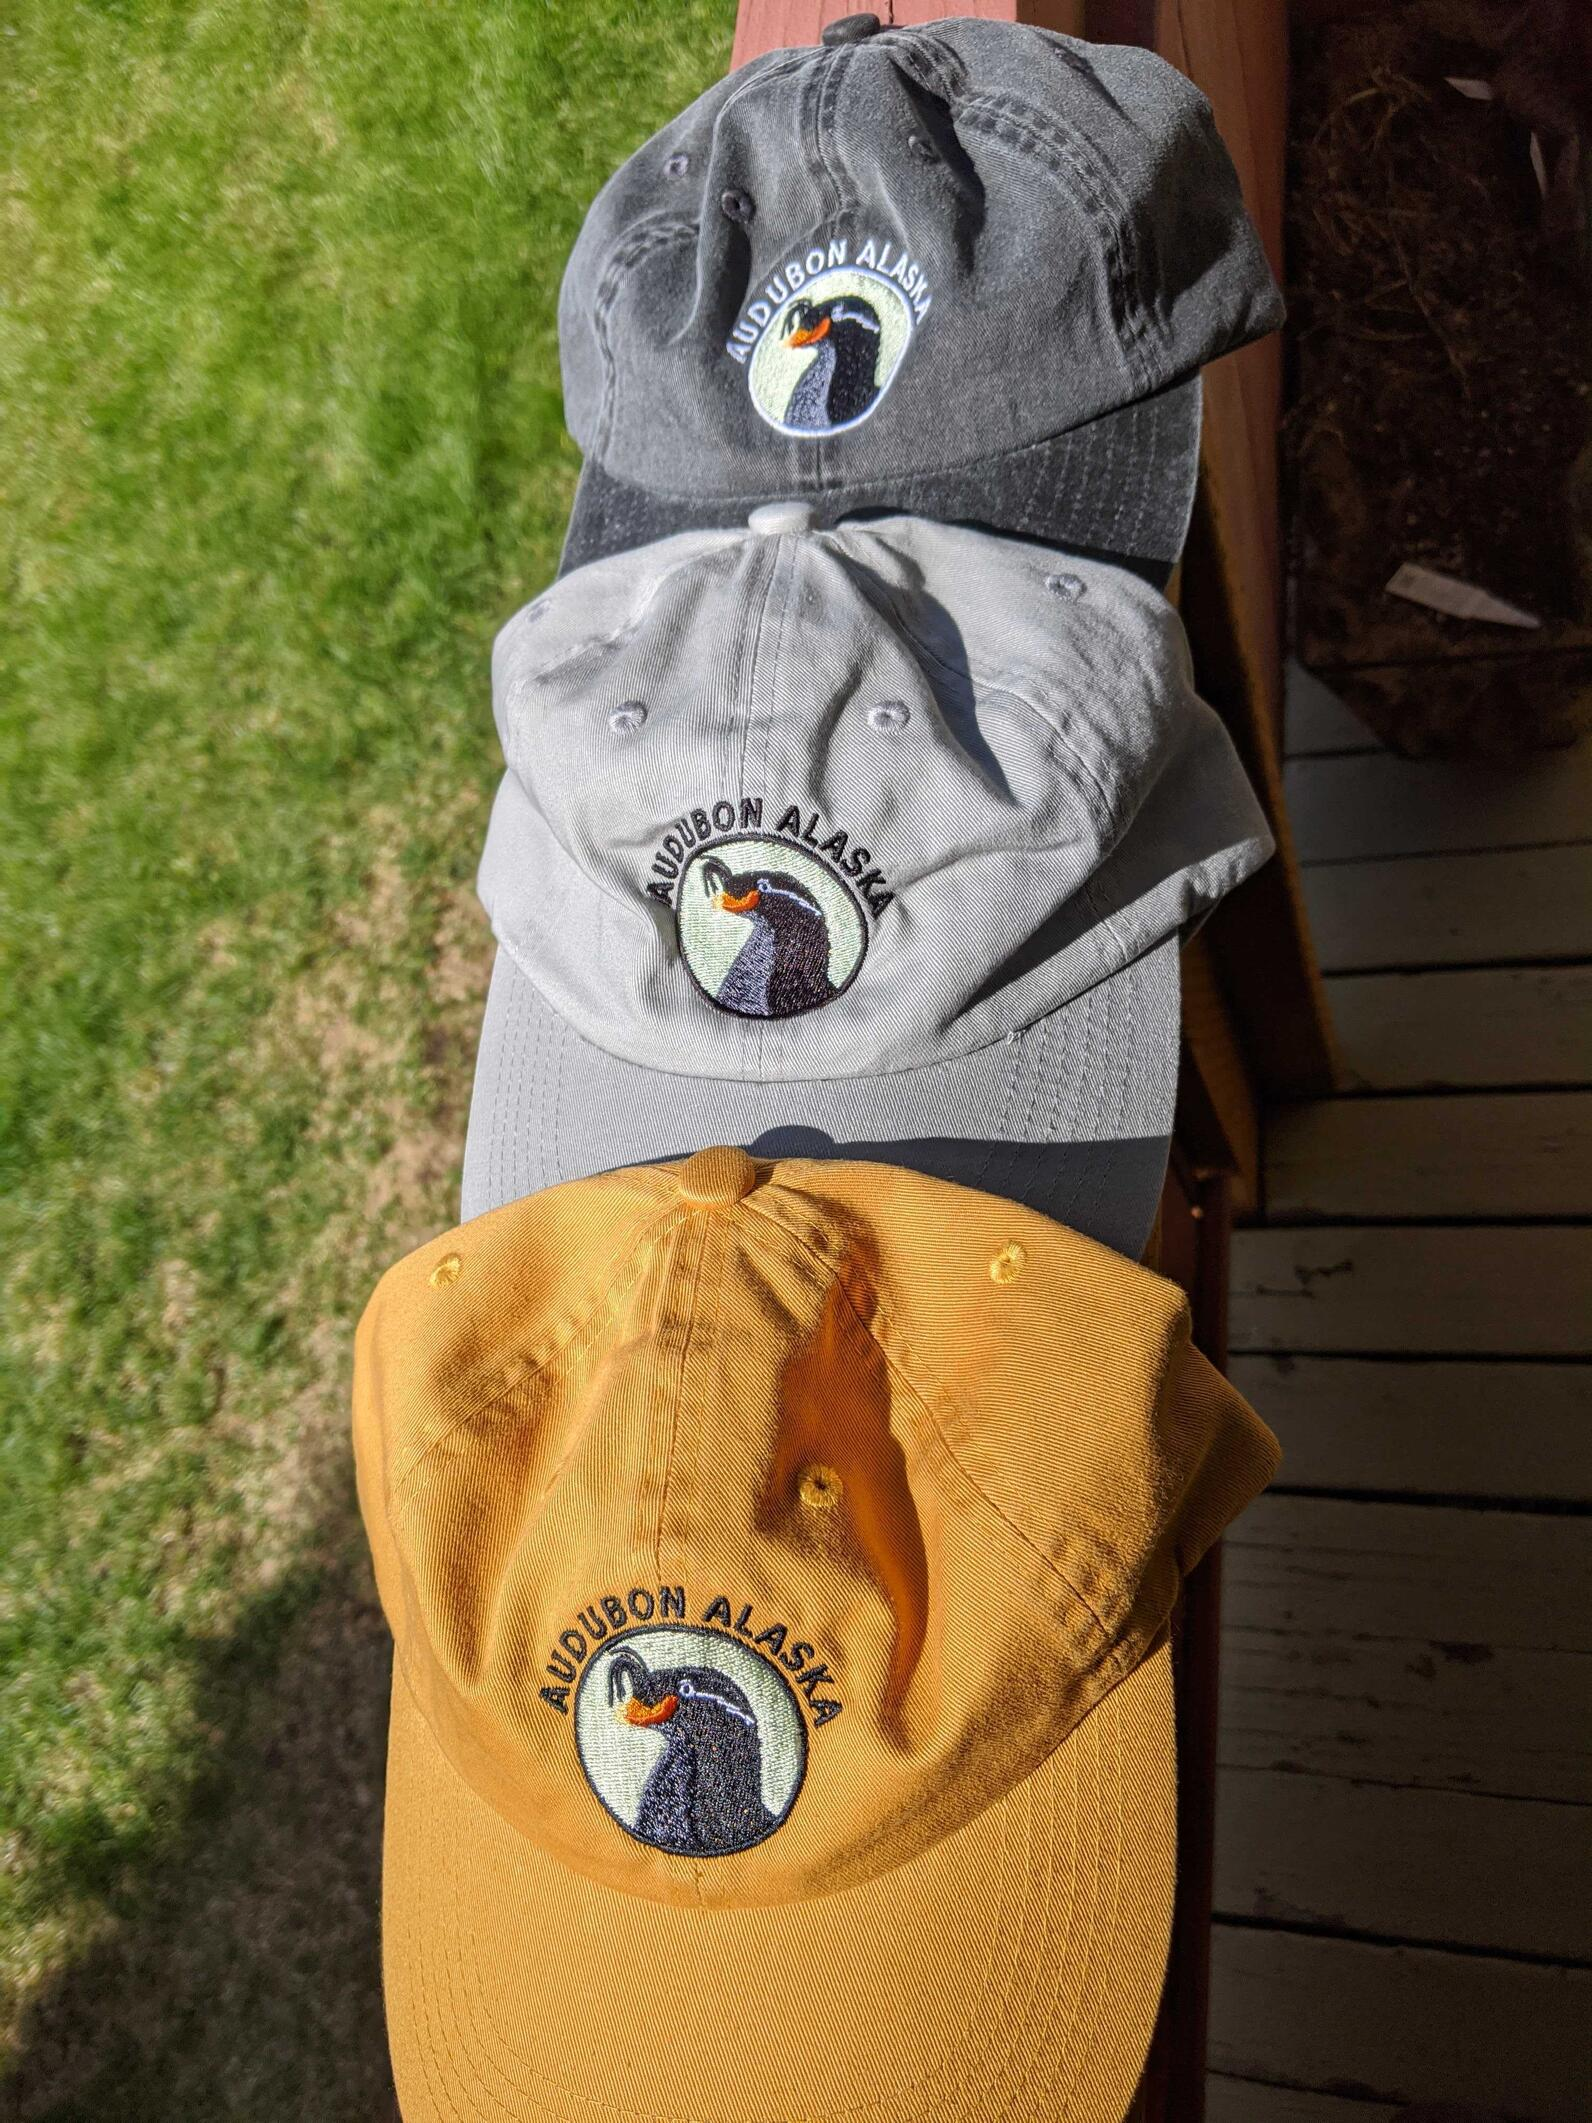 Belted Kingfisher hats